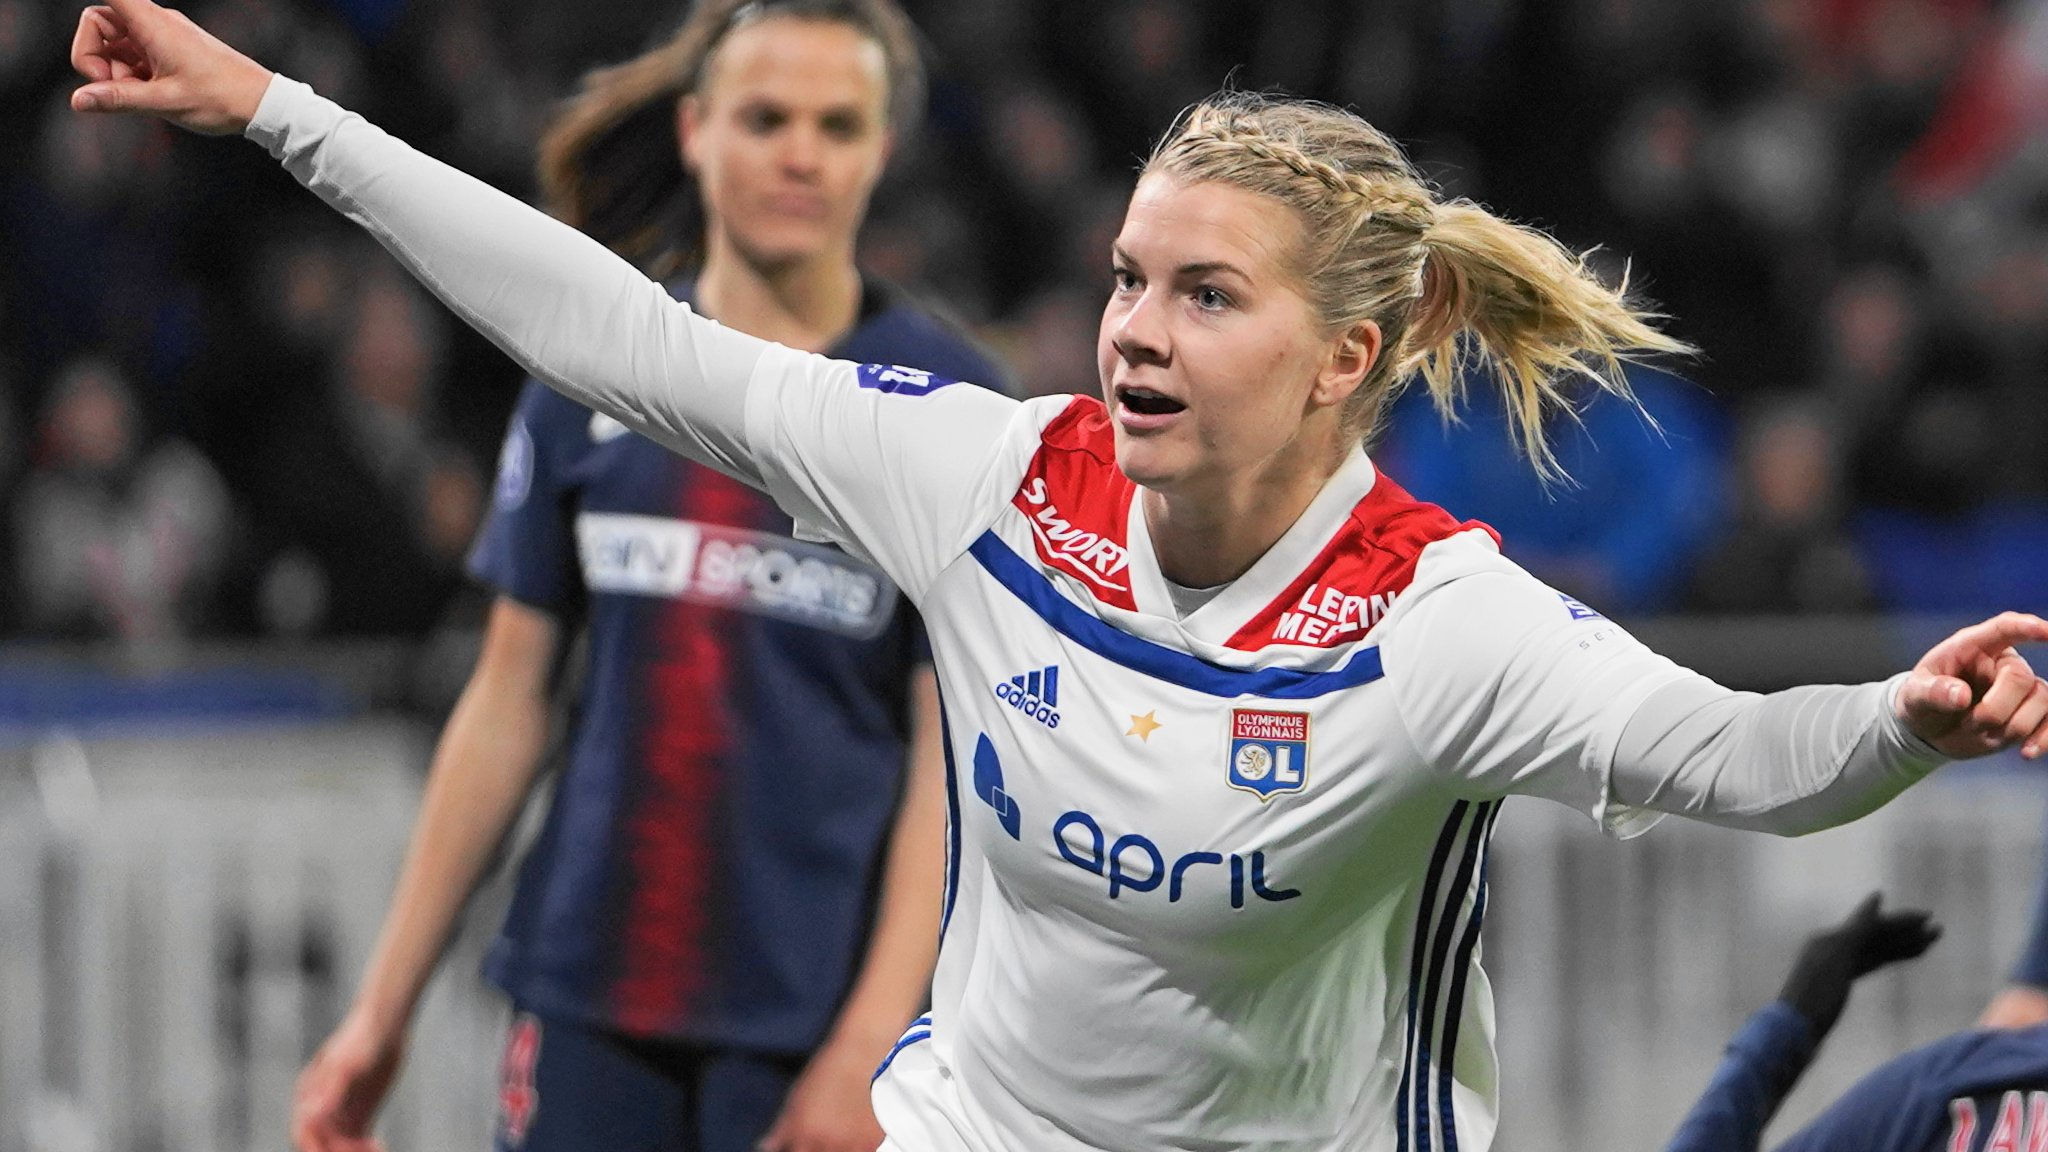 BBC Women's Footballer of the Year 2019: Ada Hegerberg profile